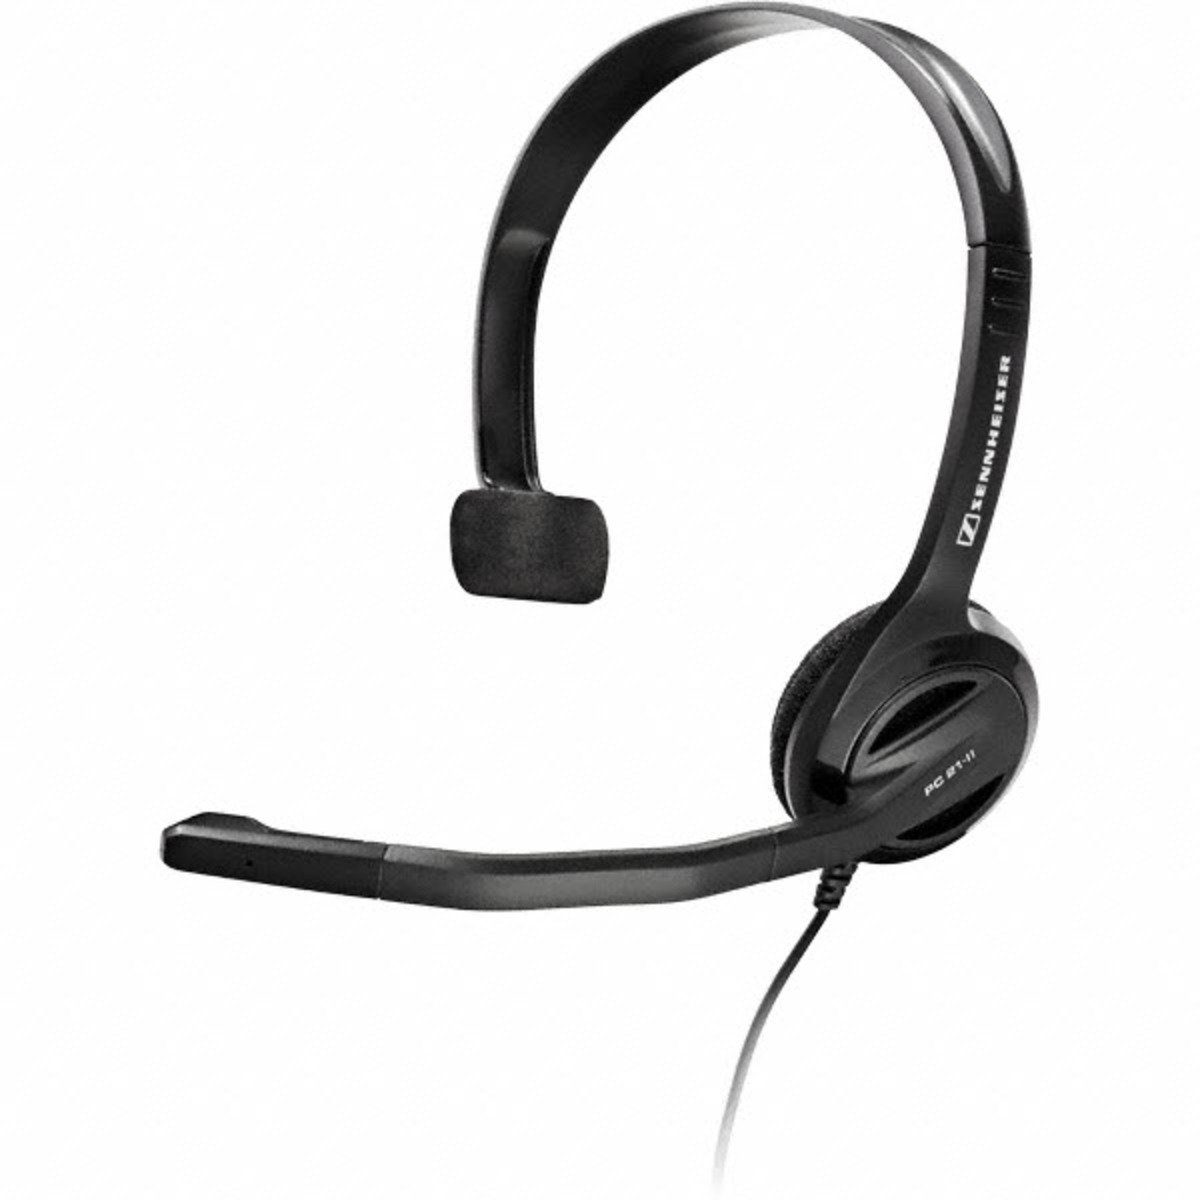 Sennheiser Headset »PC 21 II«